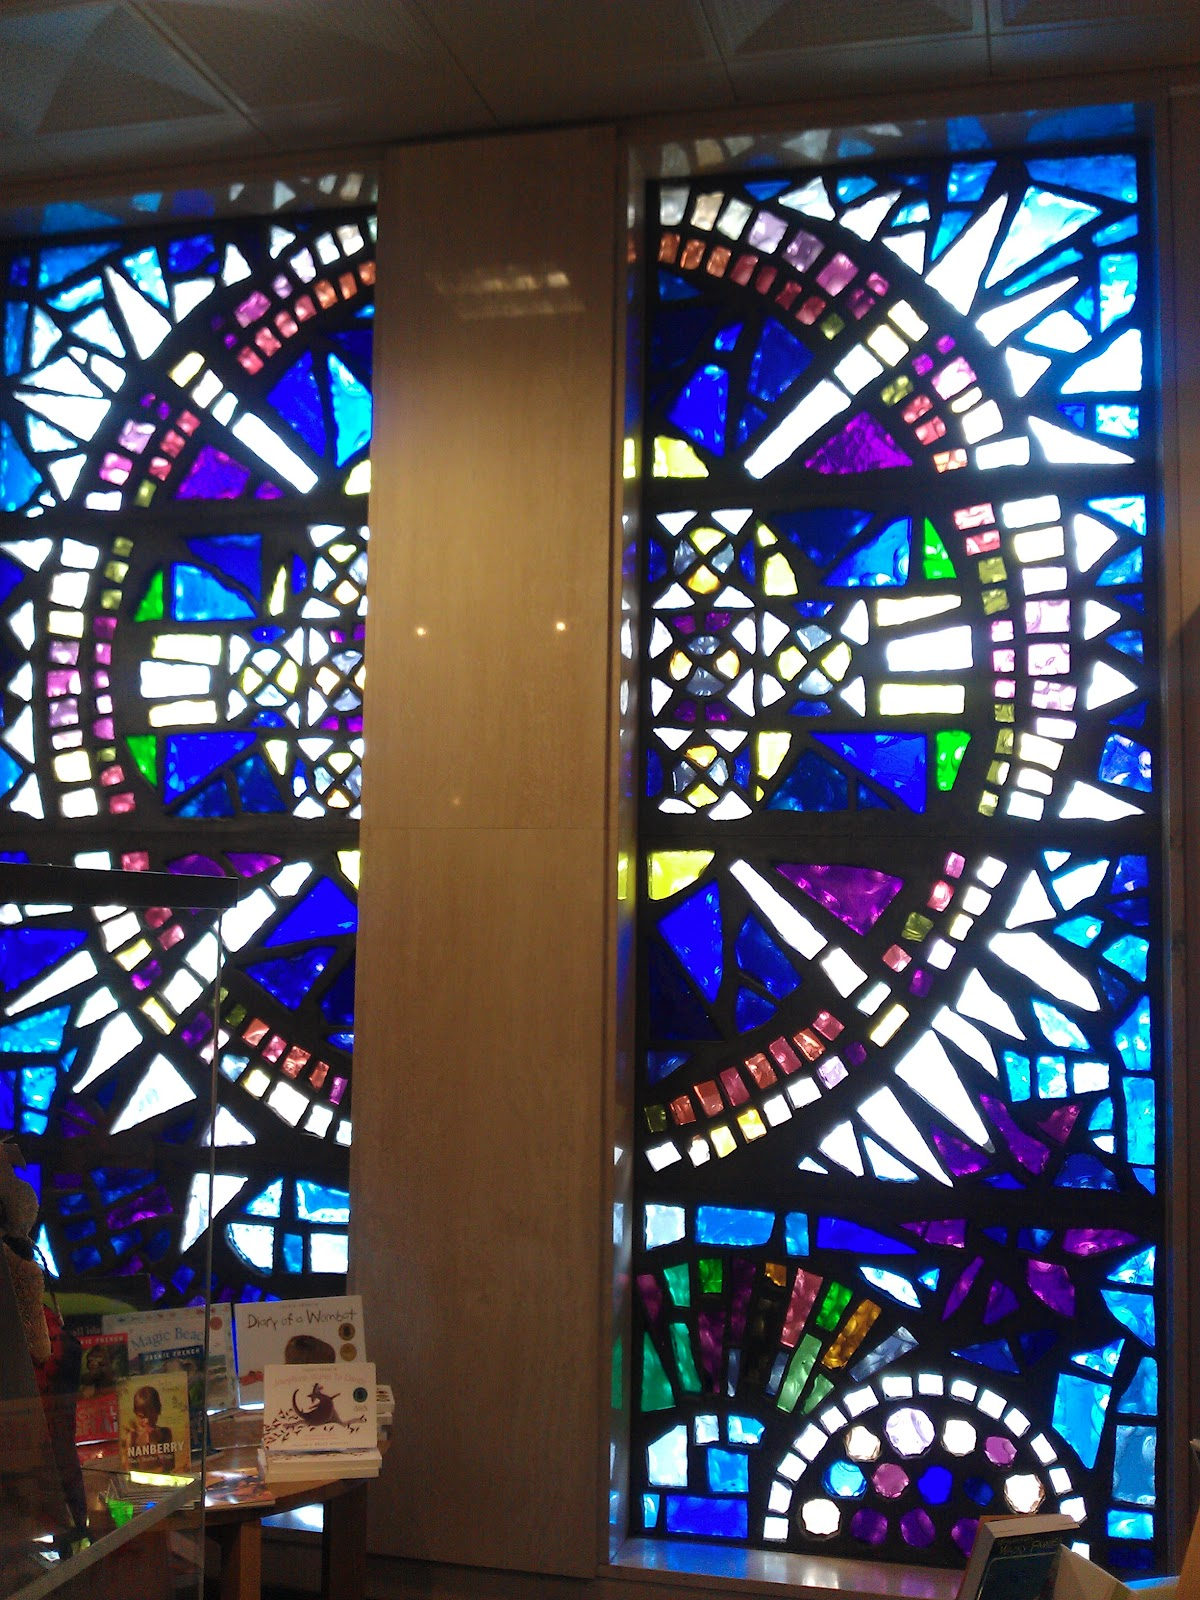 friday essay the n mosque the coloured glass skylights are more reminiscent of the work of the n artist leonard french especially his spectacular ceiling in the ngv and